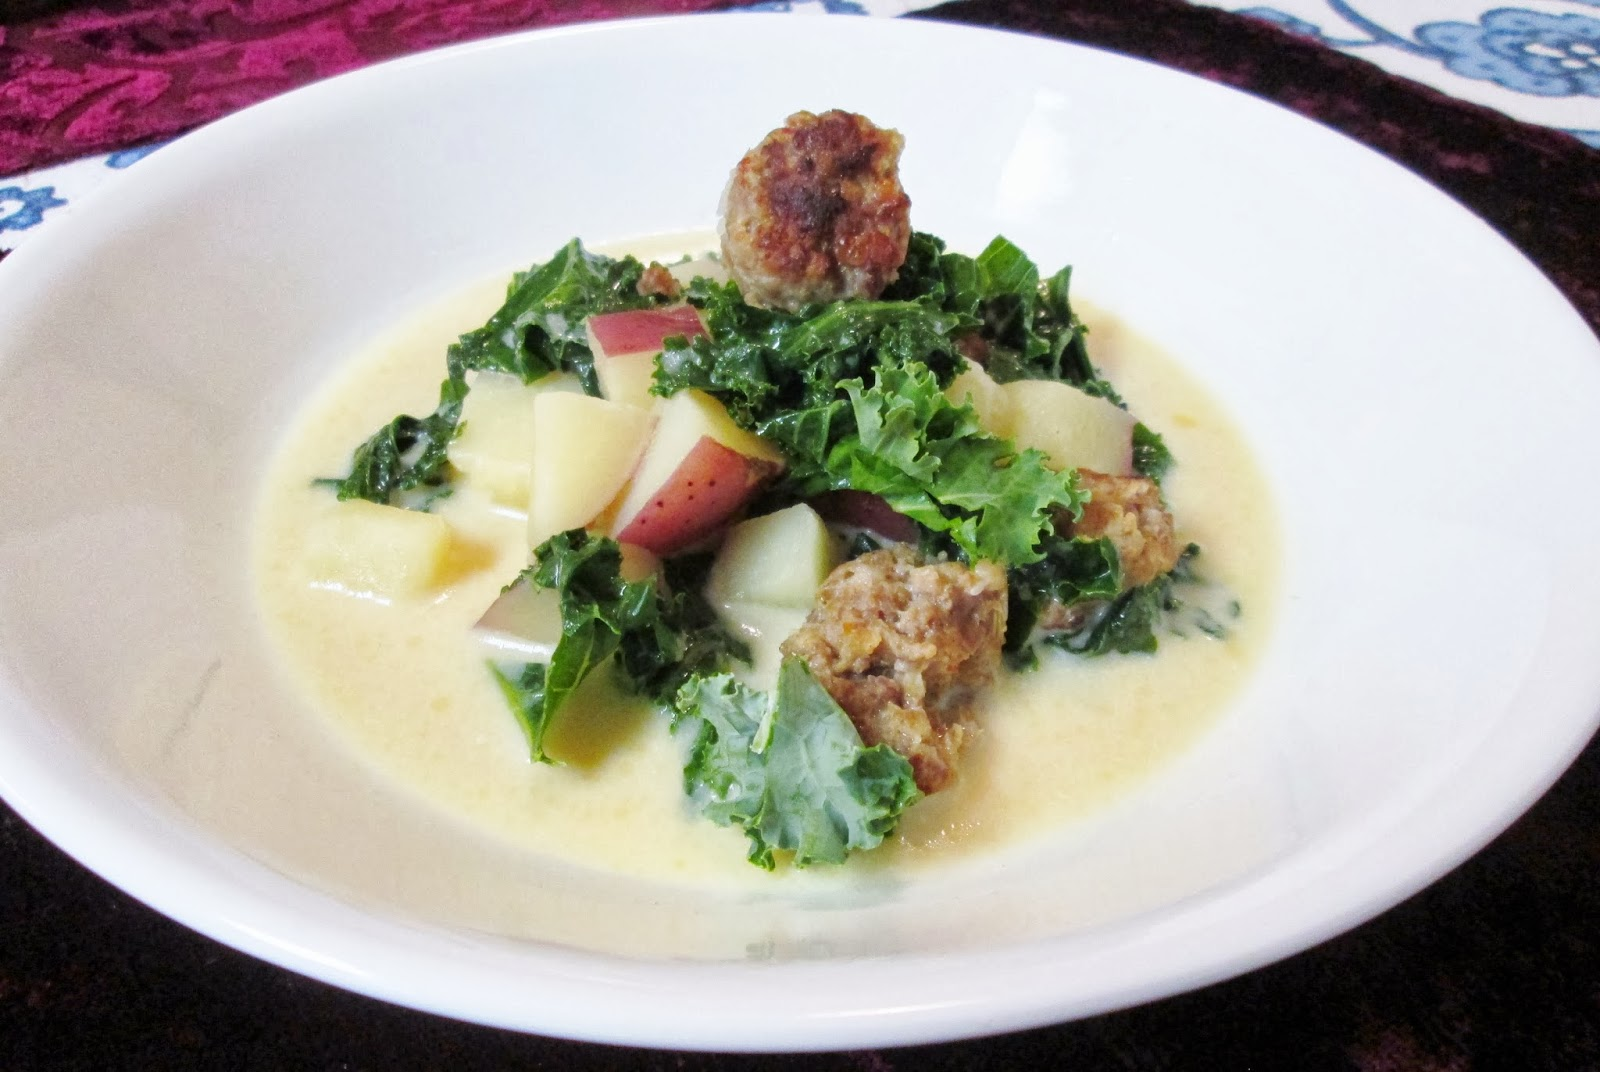 Served in a winter white dish, this soup, with hearty chunks of potato, sausage, and kale, will look scrumptious to all of your family and friends.